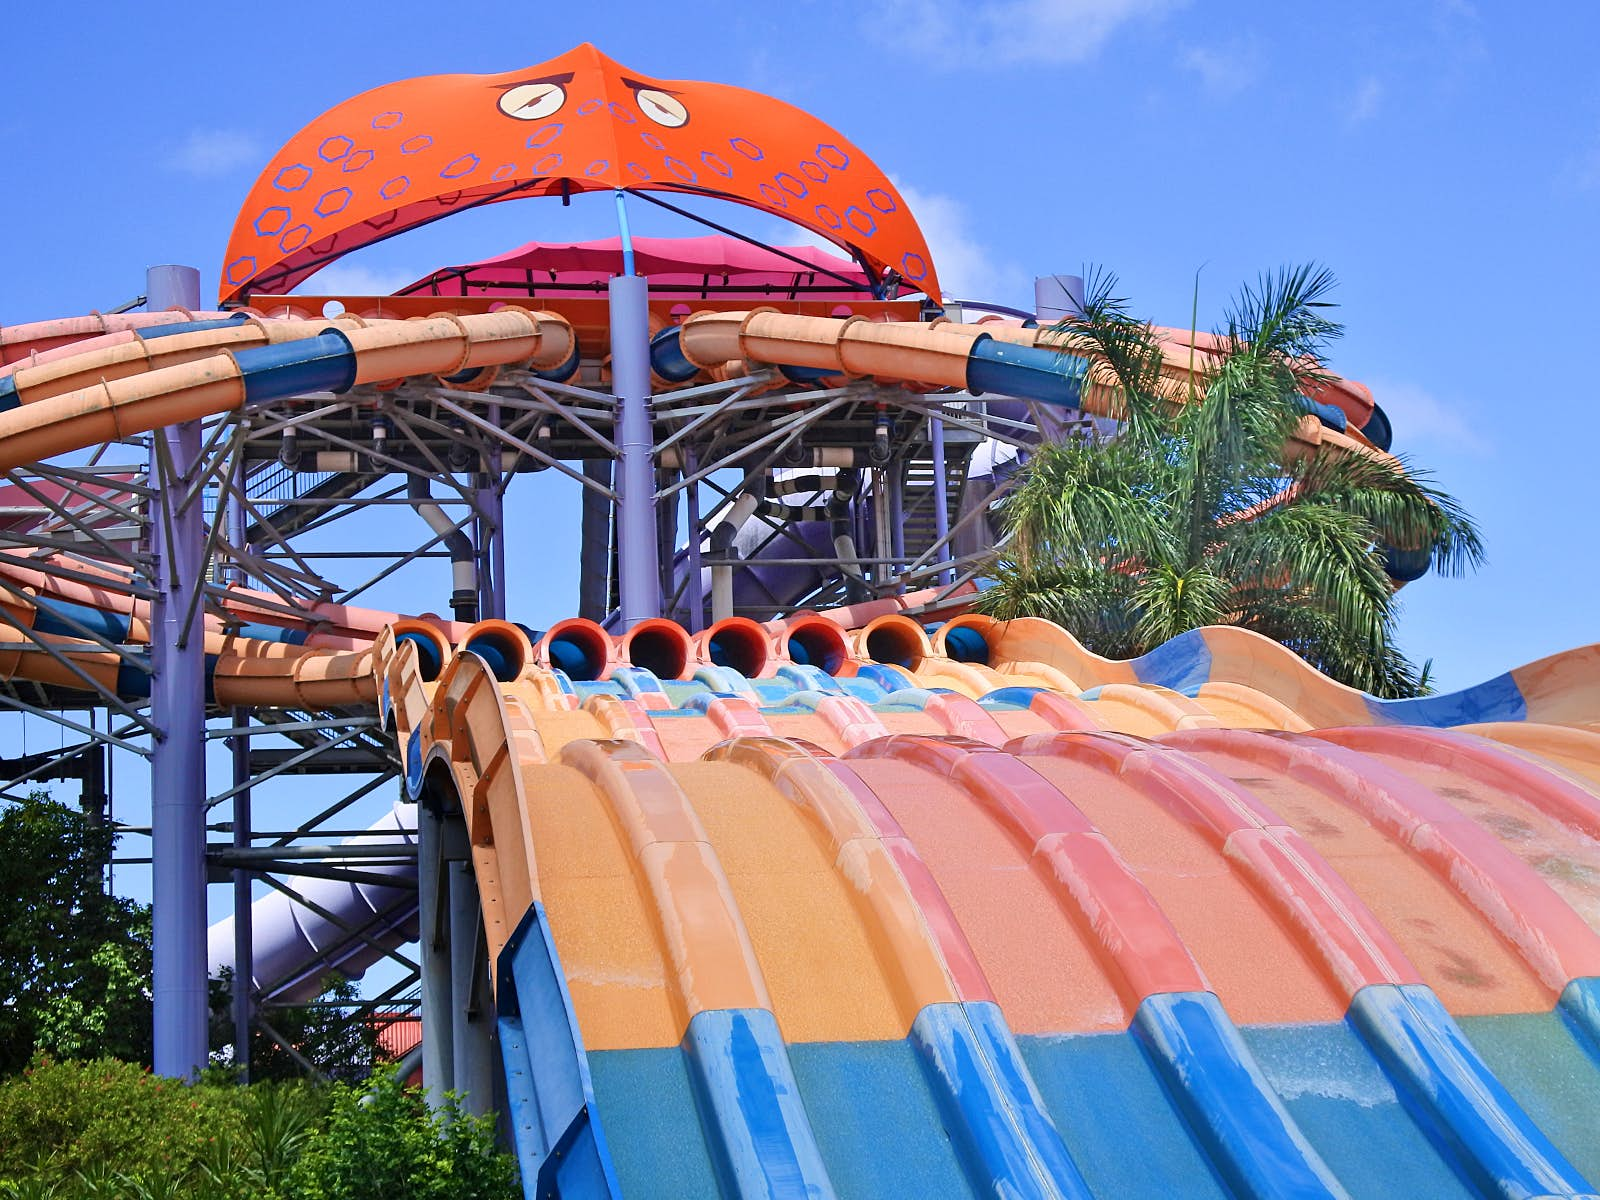 Disney alternatives - Dreamworld's WhiteWater World has a huge sea creature overseeing the 8 waterslides coming out of its mouth